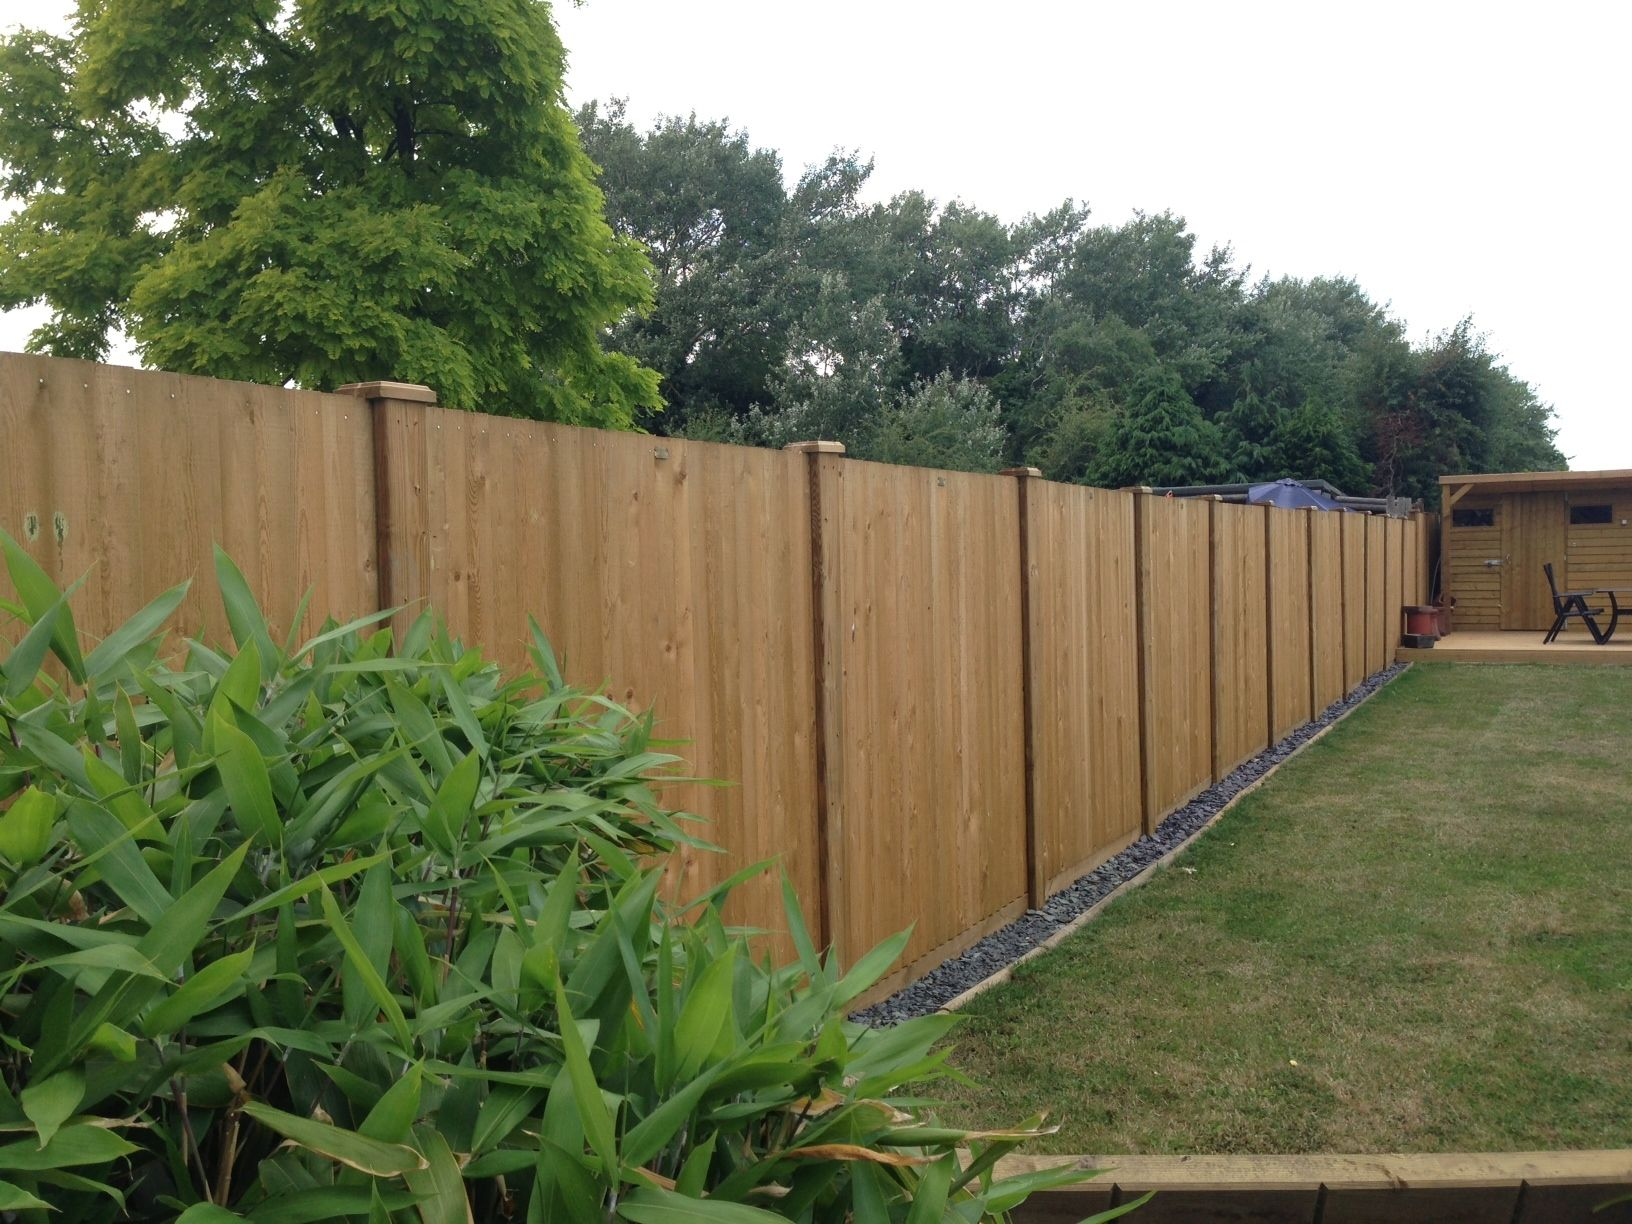 Jacksons Fence Panels And Slotted Fence Posts | Customer Project #garden # Fence #fencing